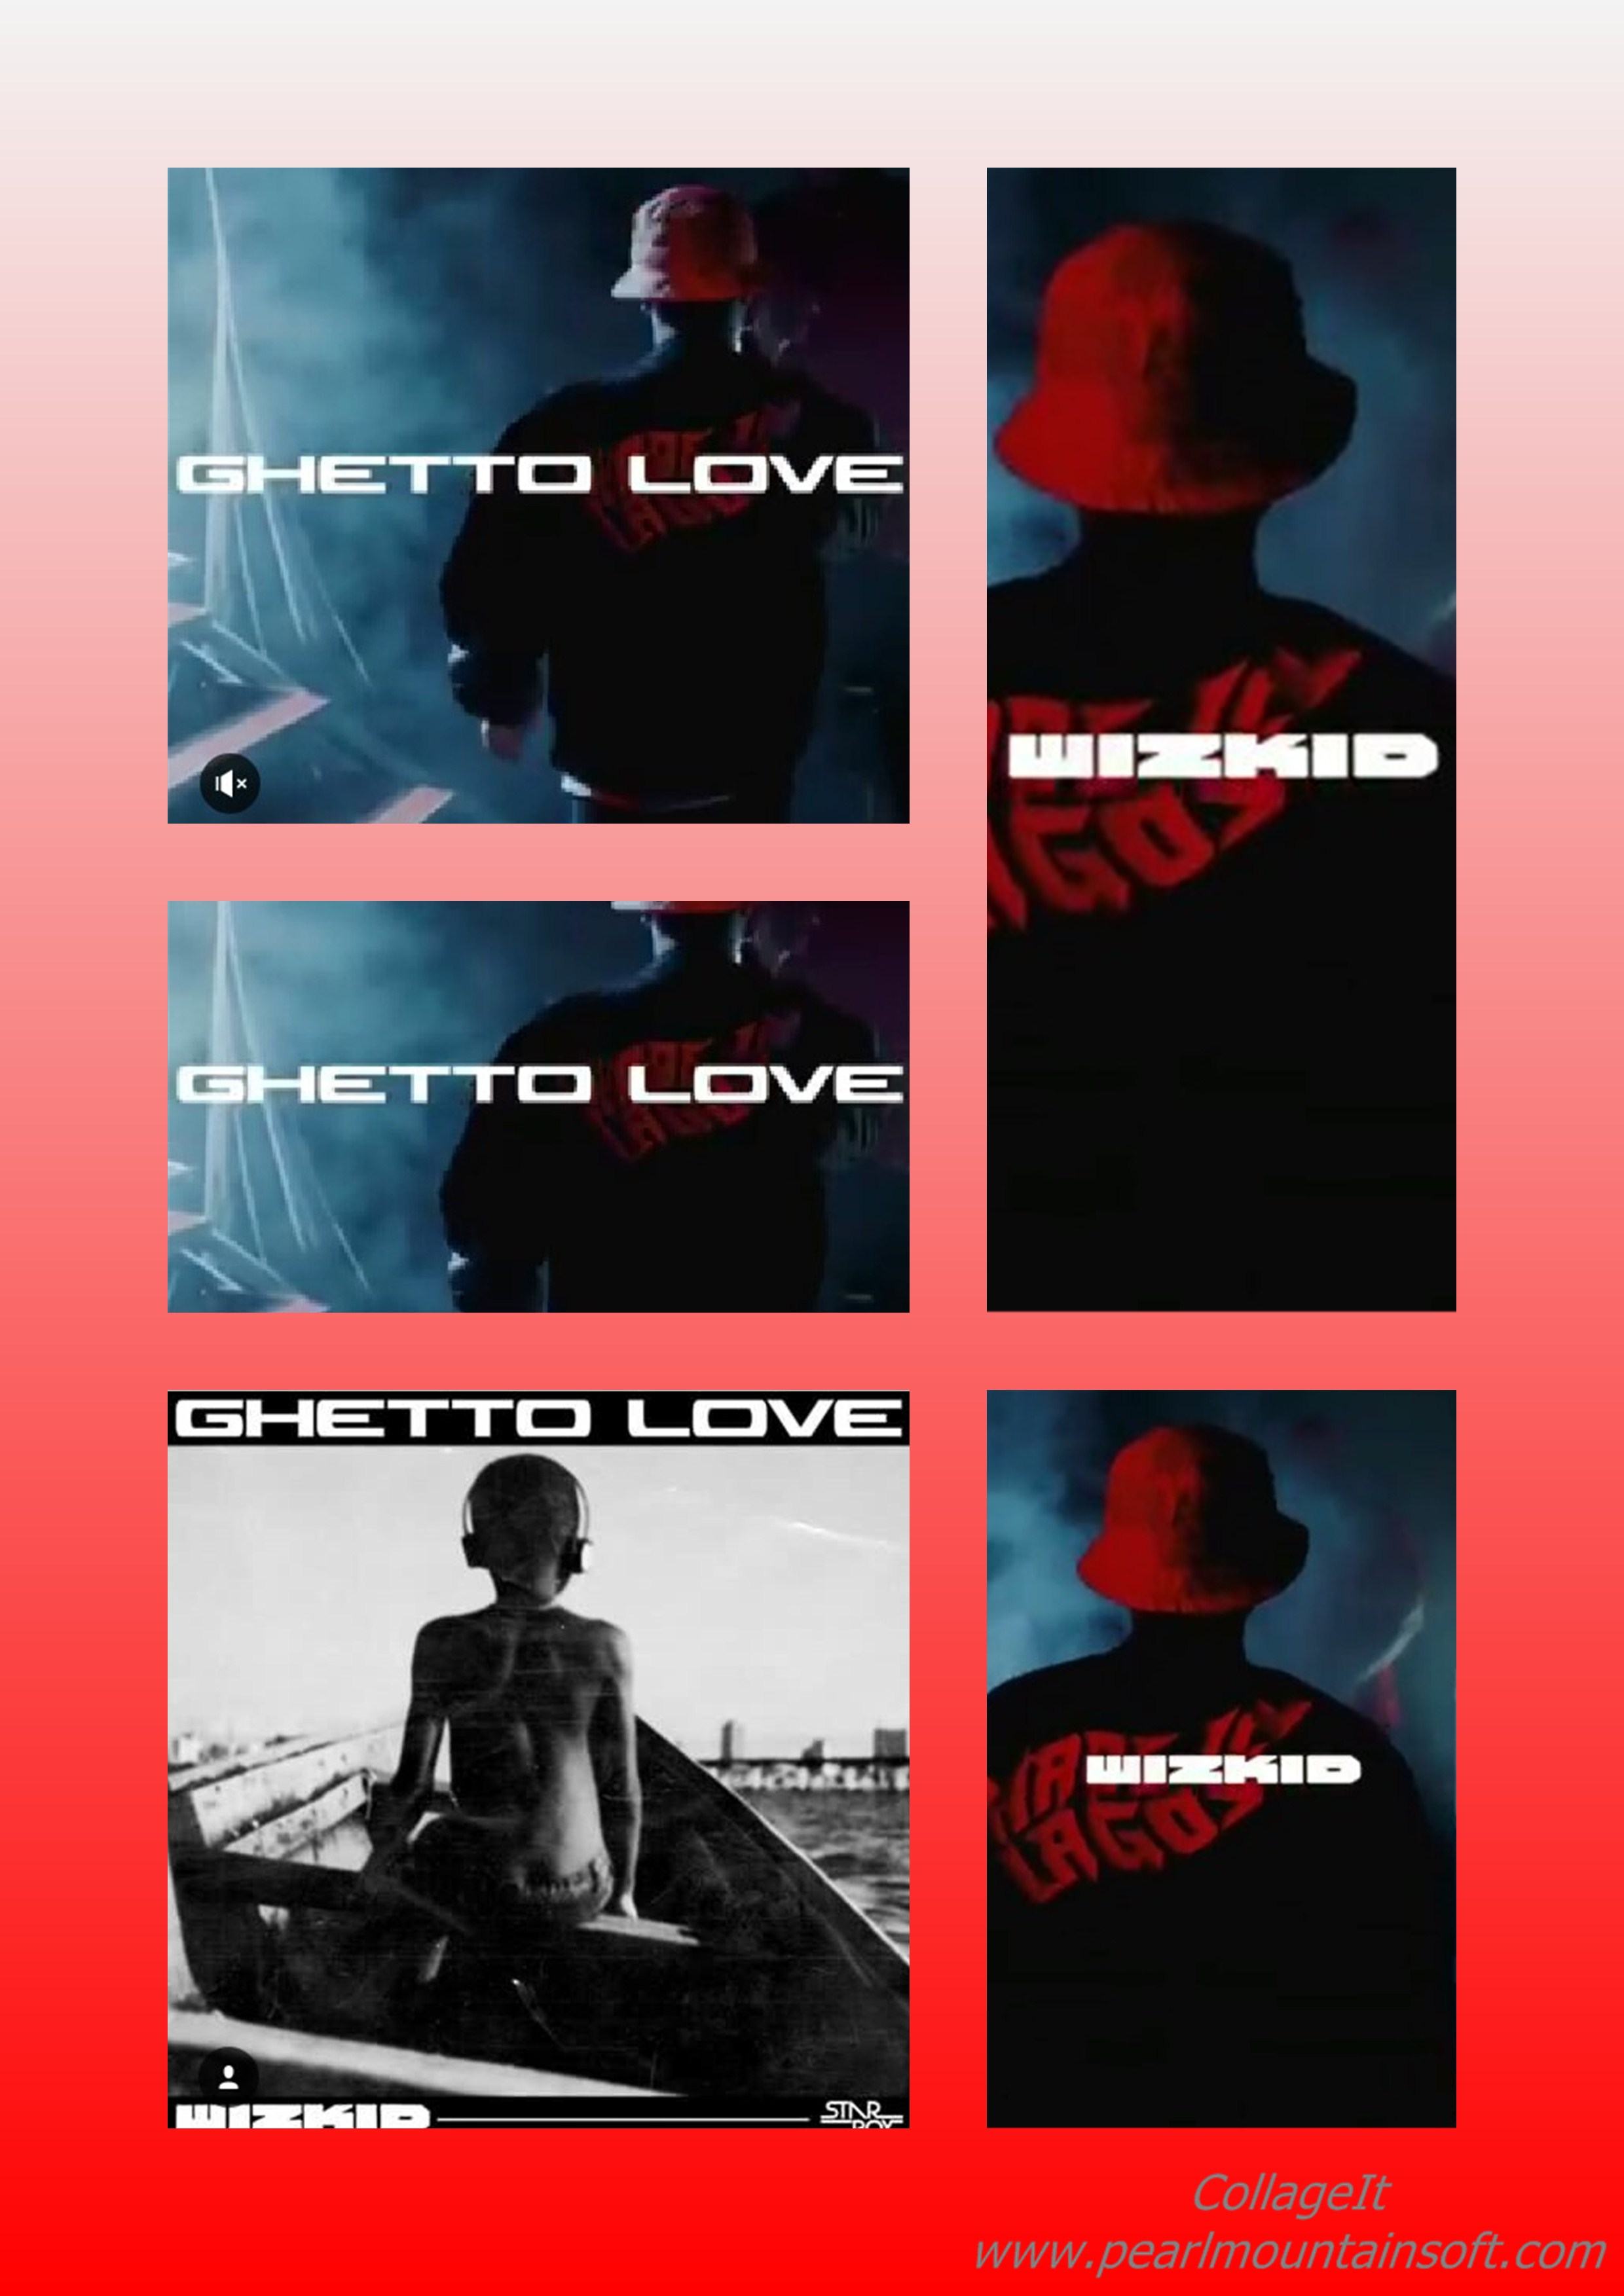 "(+LYRICS+TRANSLATION+MEANING) MUSIC REVIEW: GHETTO LOVE BY WIZKID ""WIZKID IS ALWAYS SINGING ABOUT LOVE BUT HAS NEVER…"